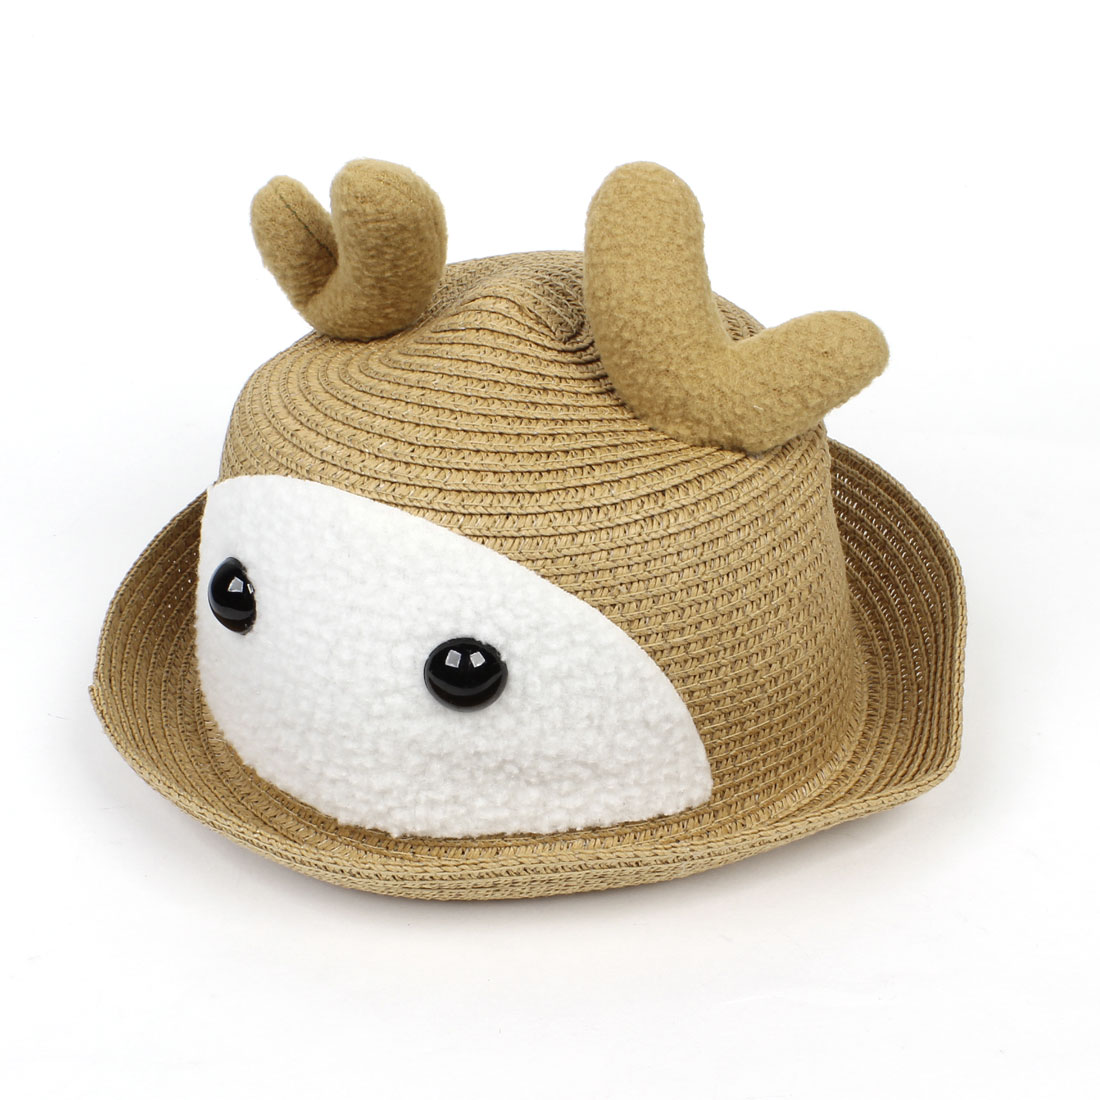 Cloche Design Eyes Detail Summer Casual Straw Hat Khaki for Kids